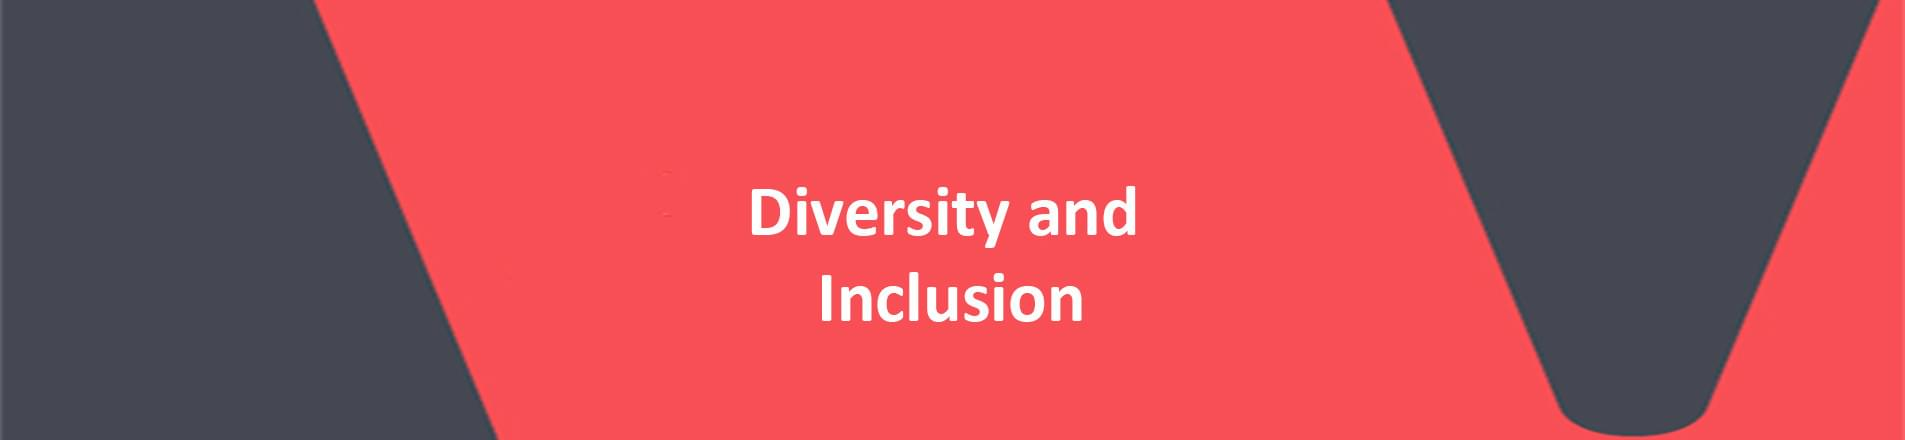 Diversity and Inclusion text